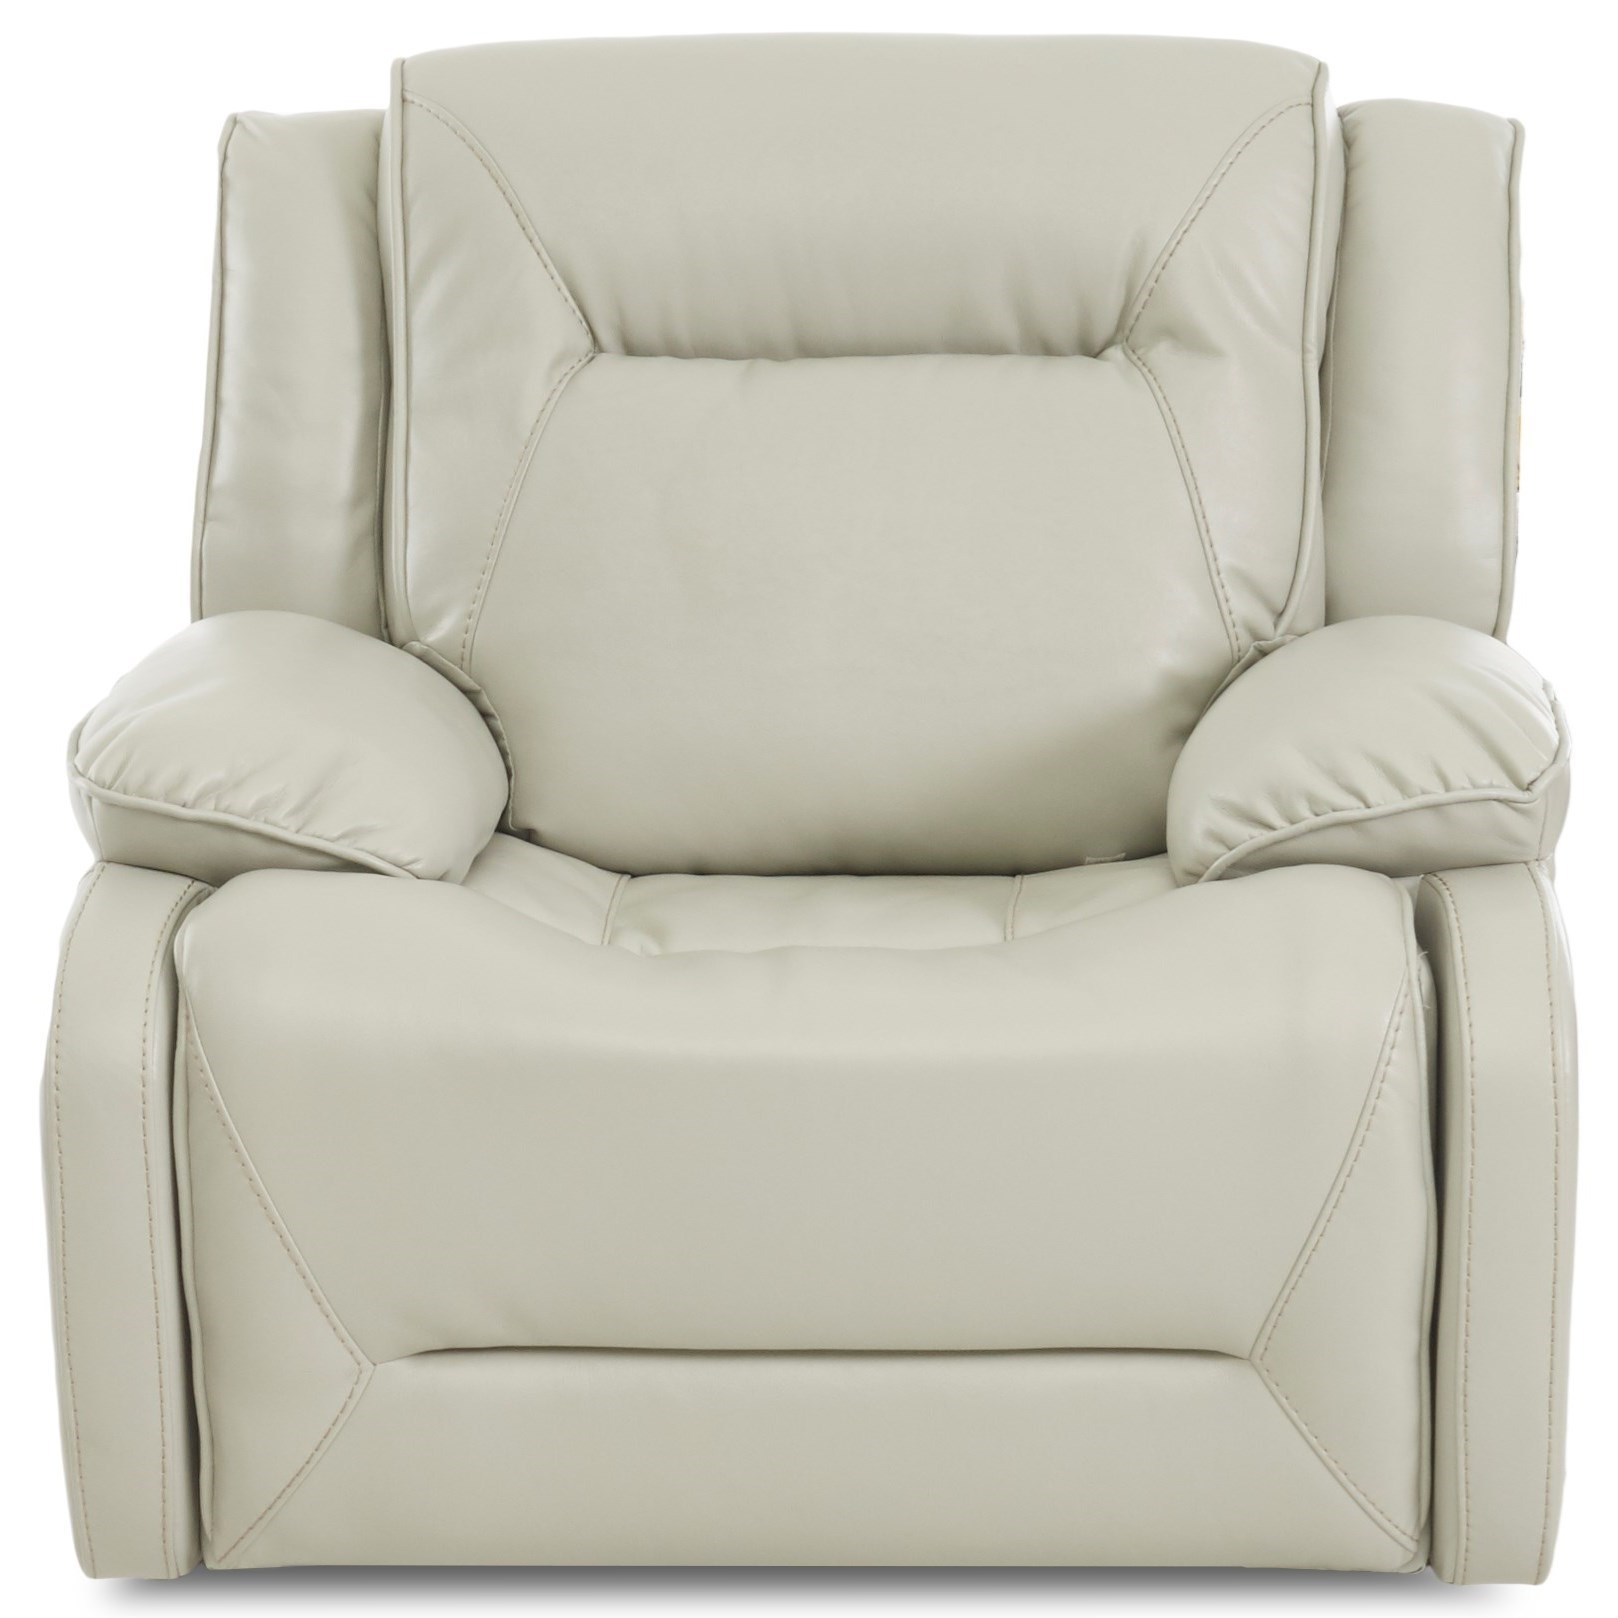 Dansby Power Reclining Chair With Power Tilt Headrest And USB Port By  Klaussner International